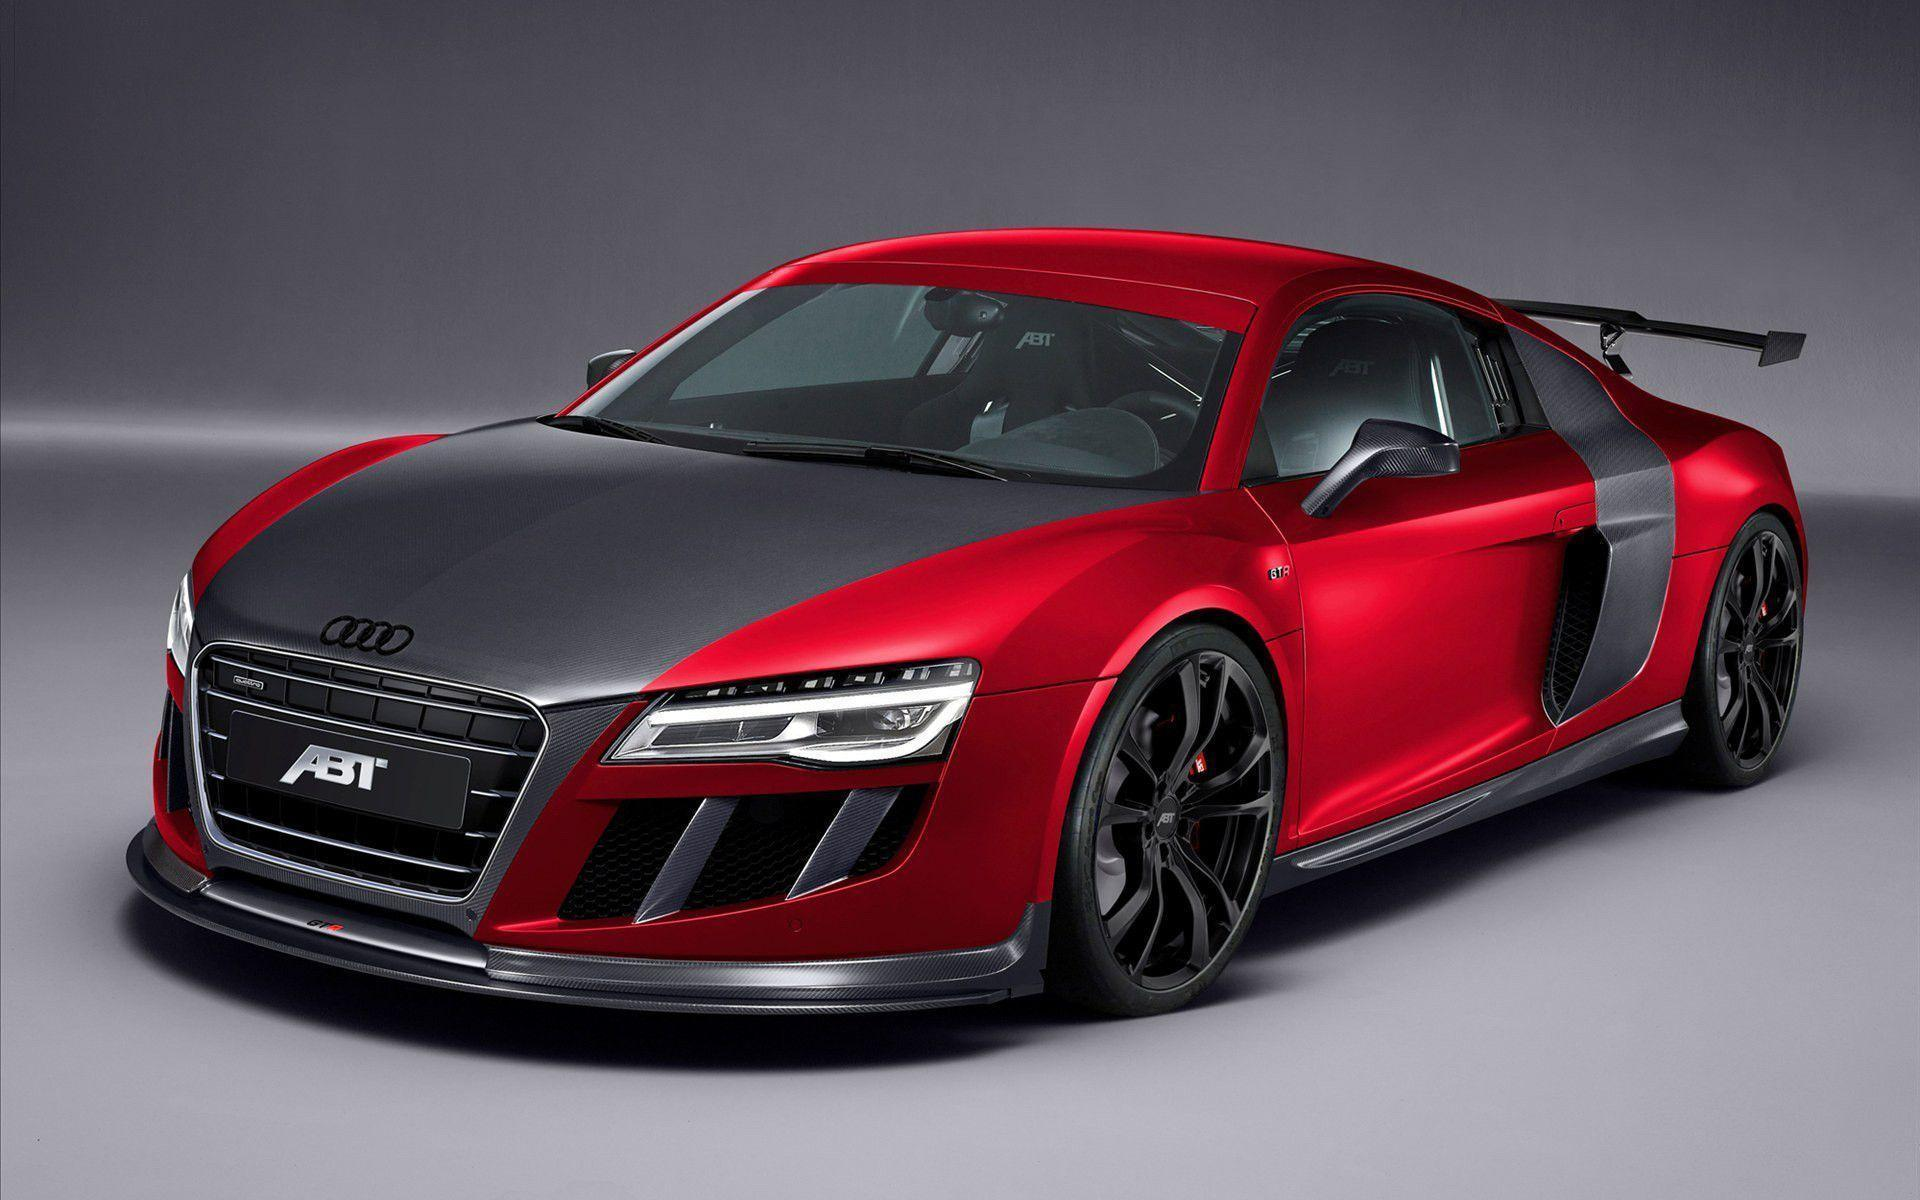 2013 ABT Audi R8 GTR Wallpapers